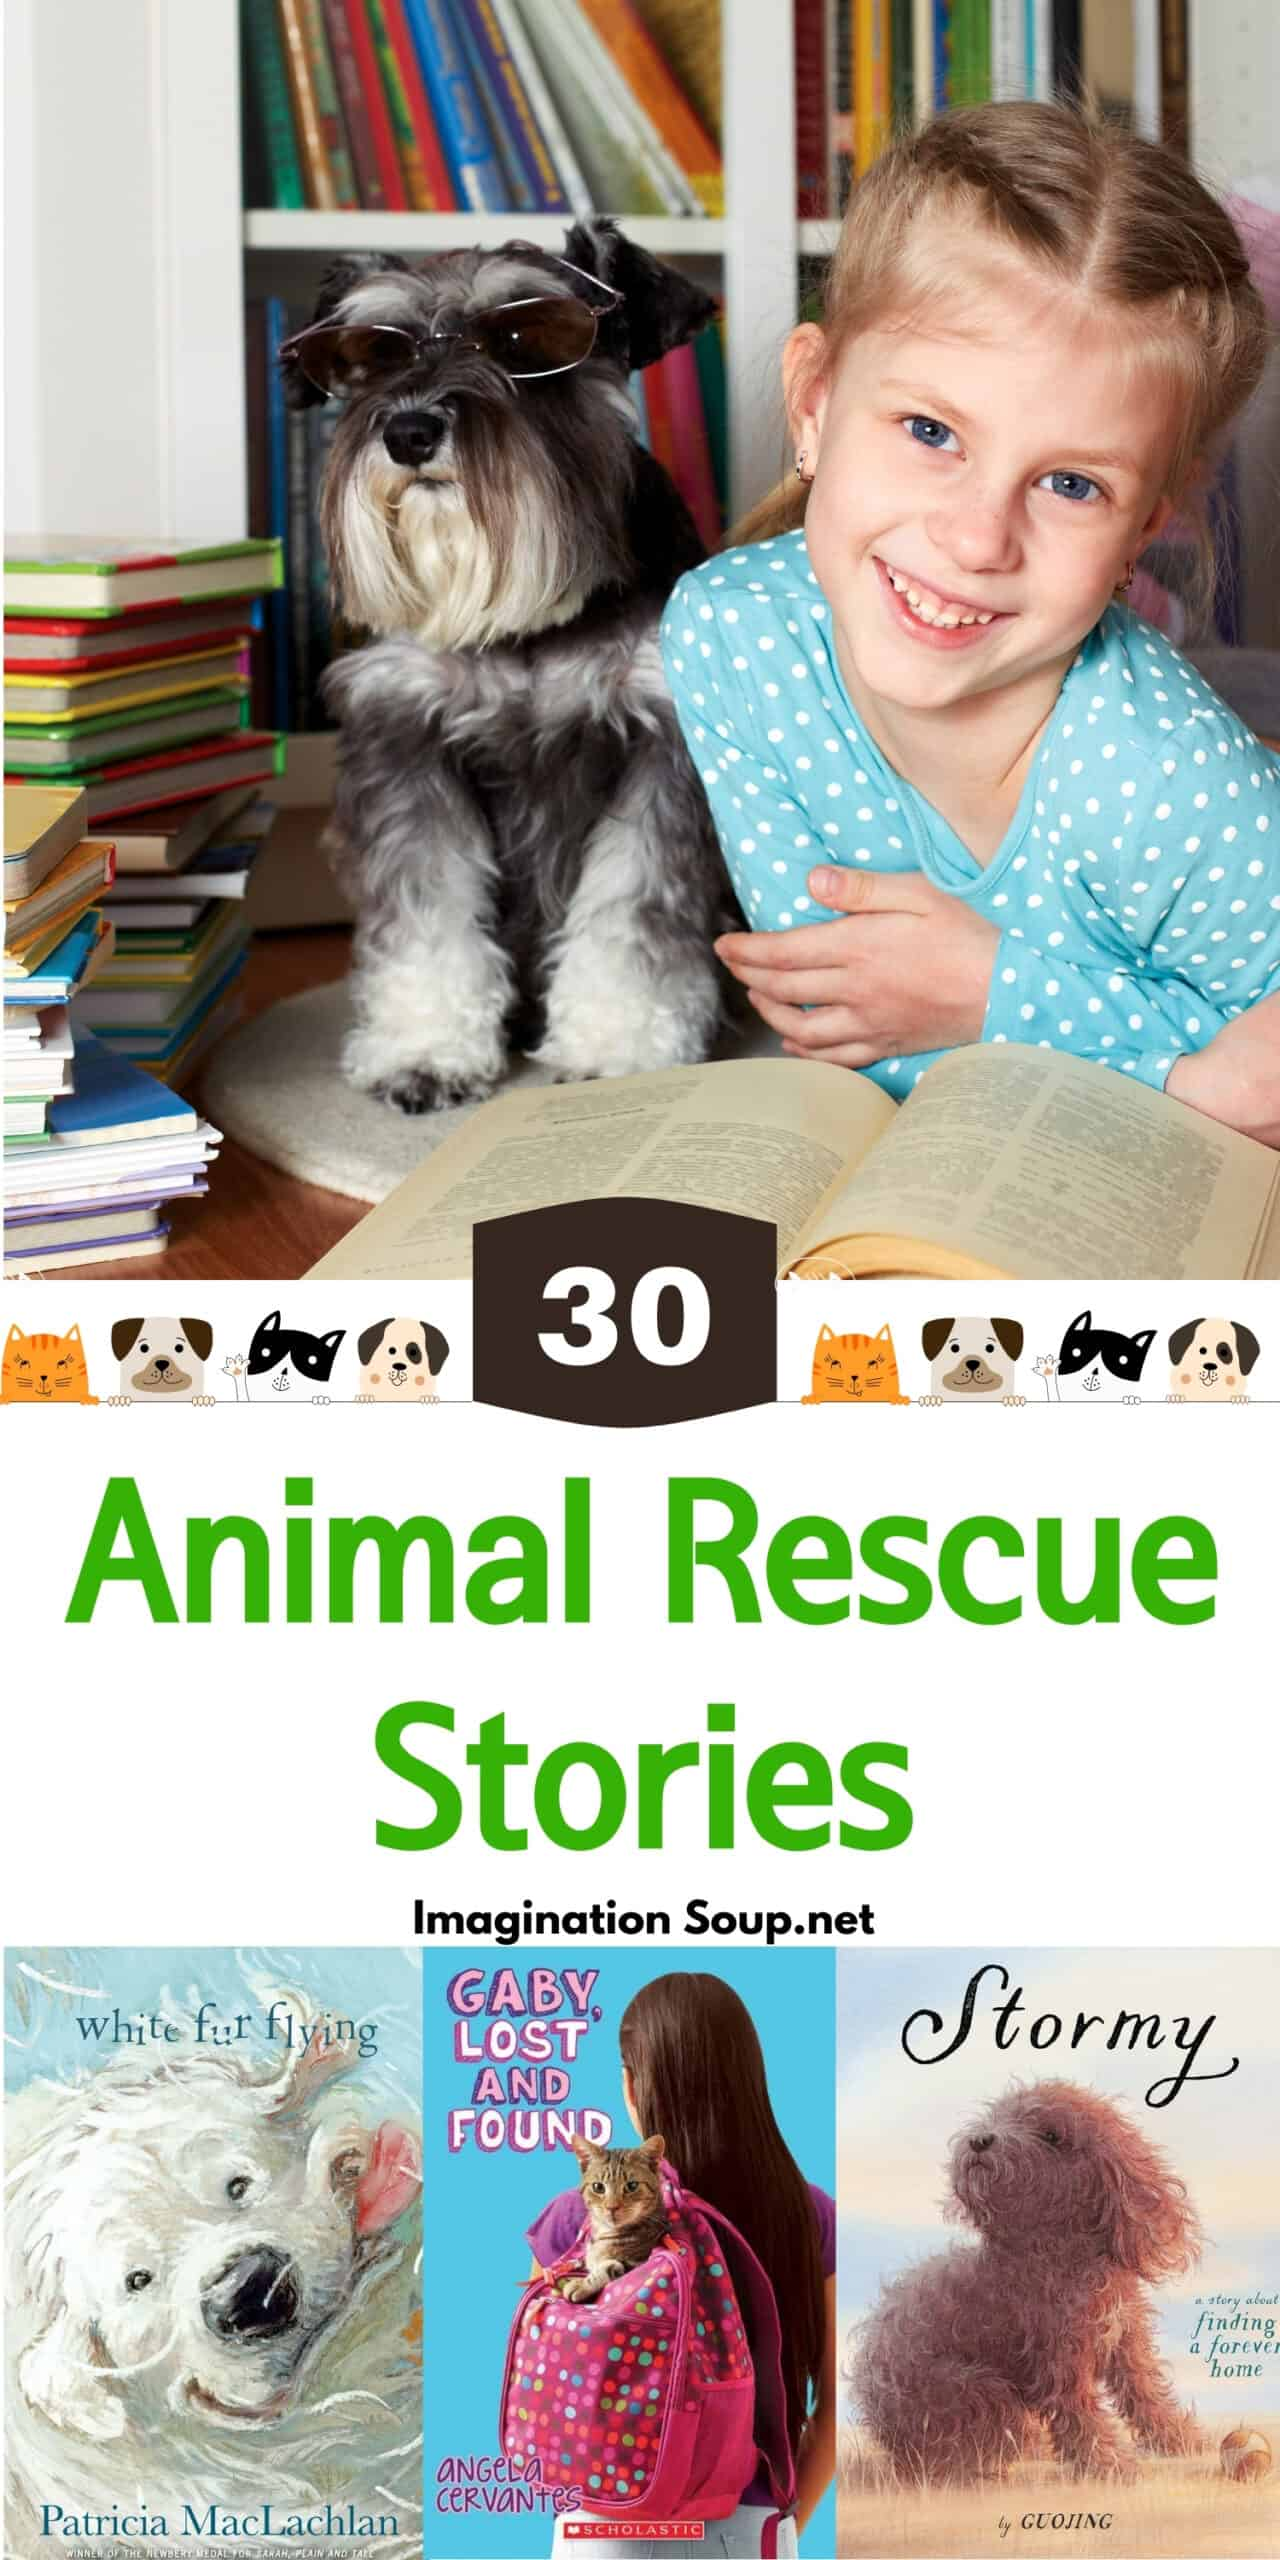 Animal Rescue Stories for Kids